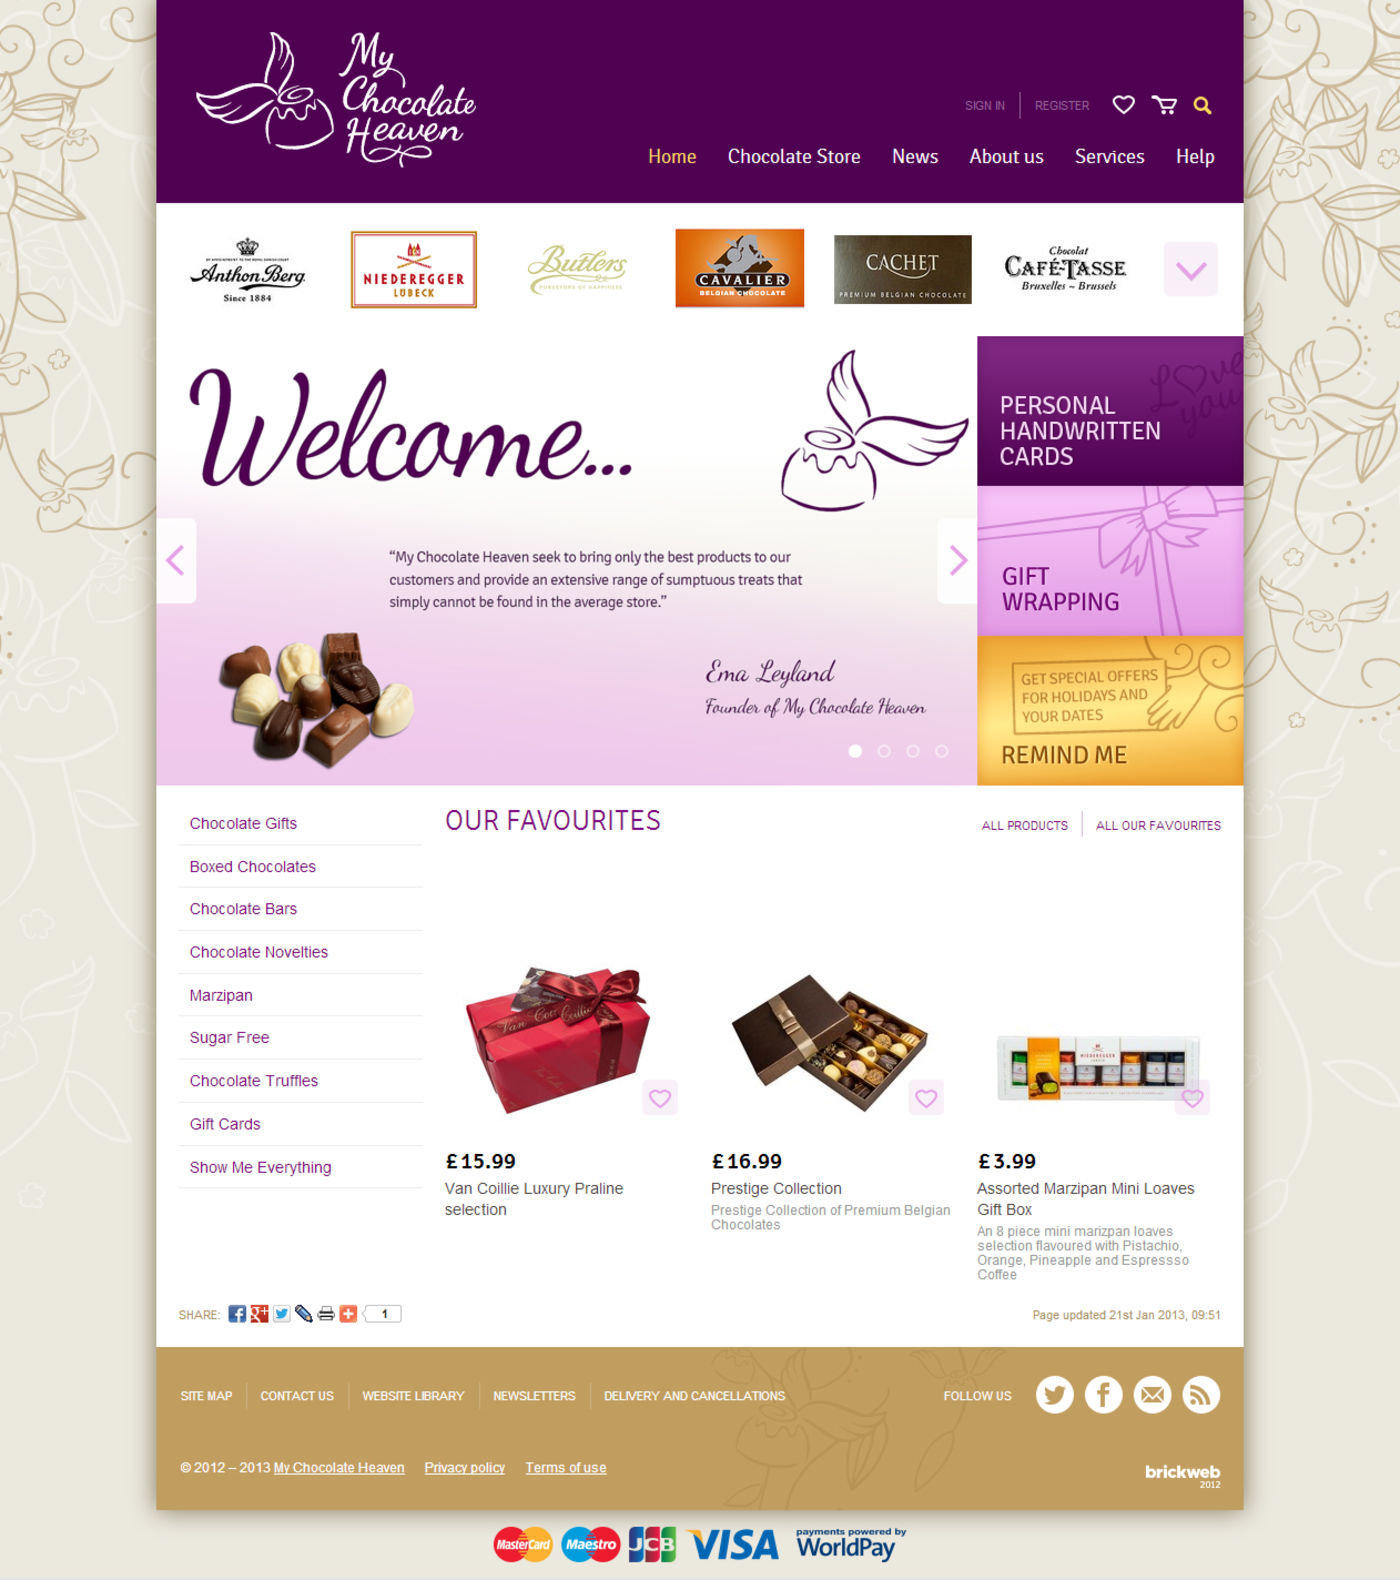 My Chocolate Heaven Homepage